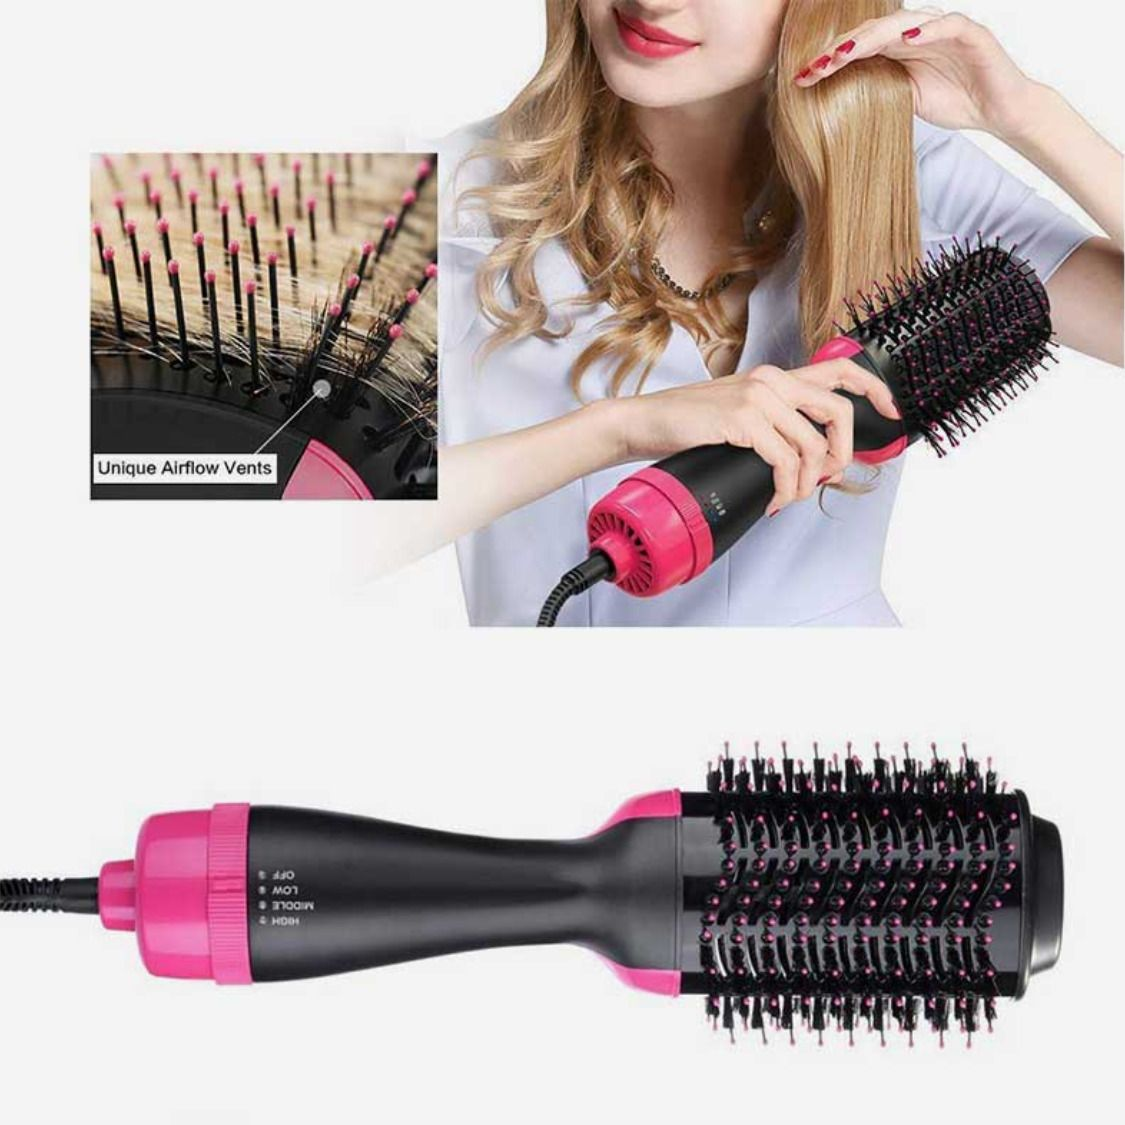 4 In 1 Hair Dryer Styler And Volumizer Negative Ion Hair Straightener And Curler Brush Professional Hair Dryer Hair Brush Straightener Hair Blower